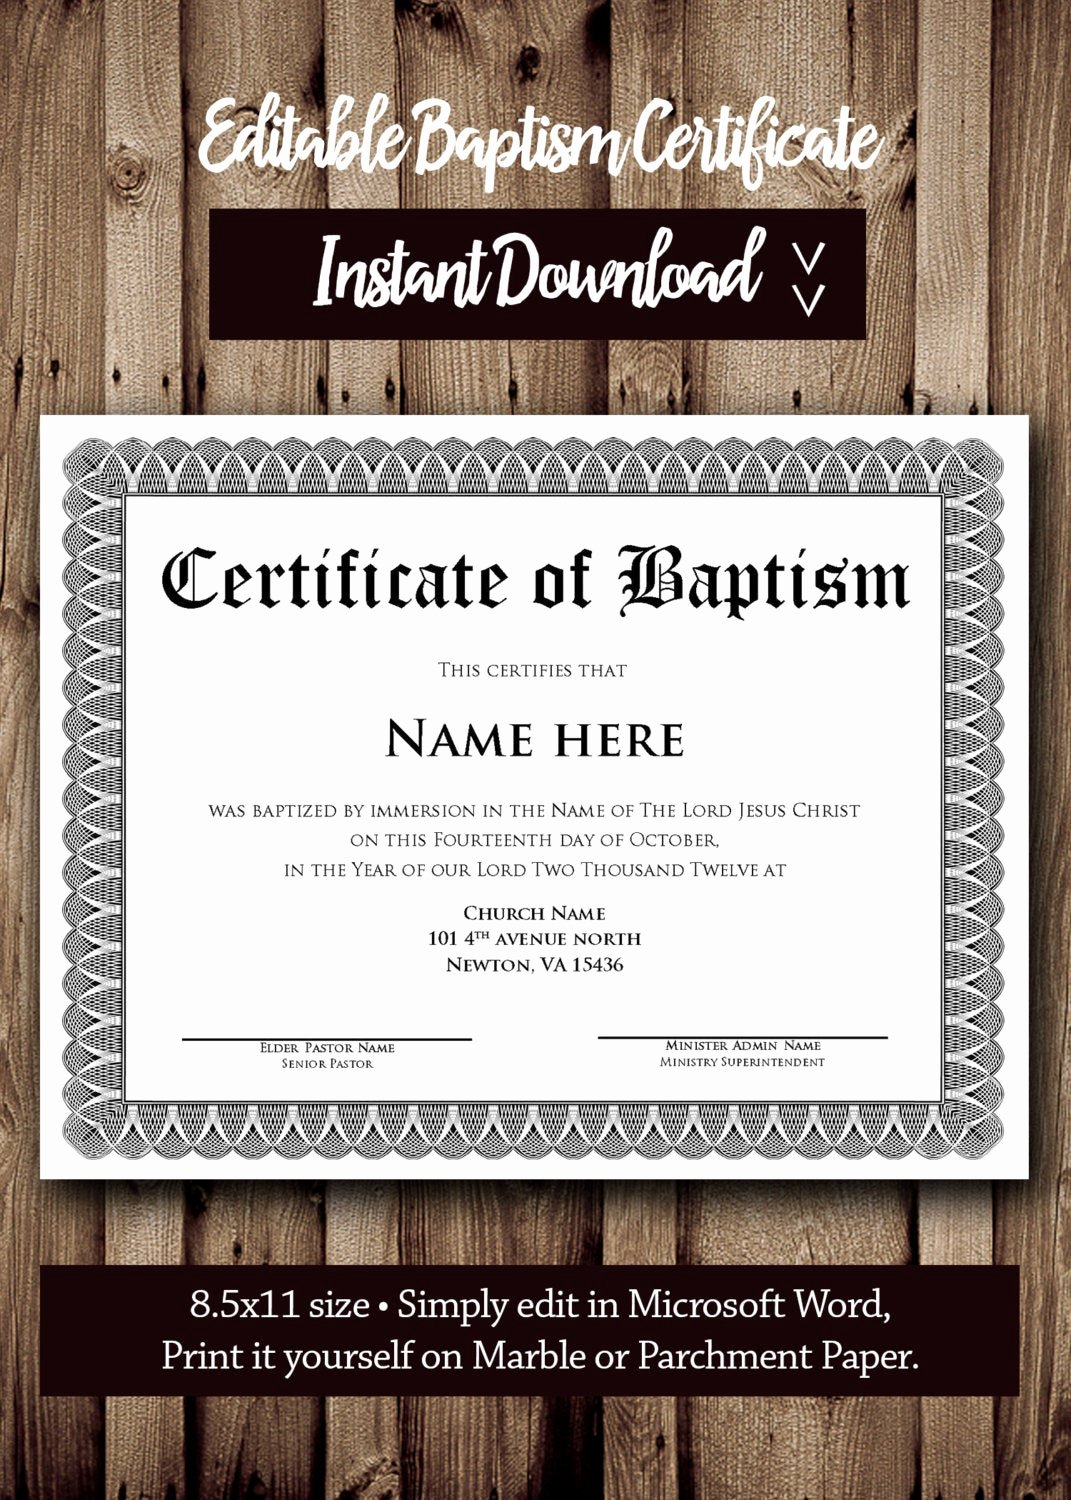 Baptism Certificate Template Download Inspirational Baptism Certificate Template Microsoft Word Editable